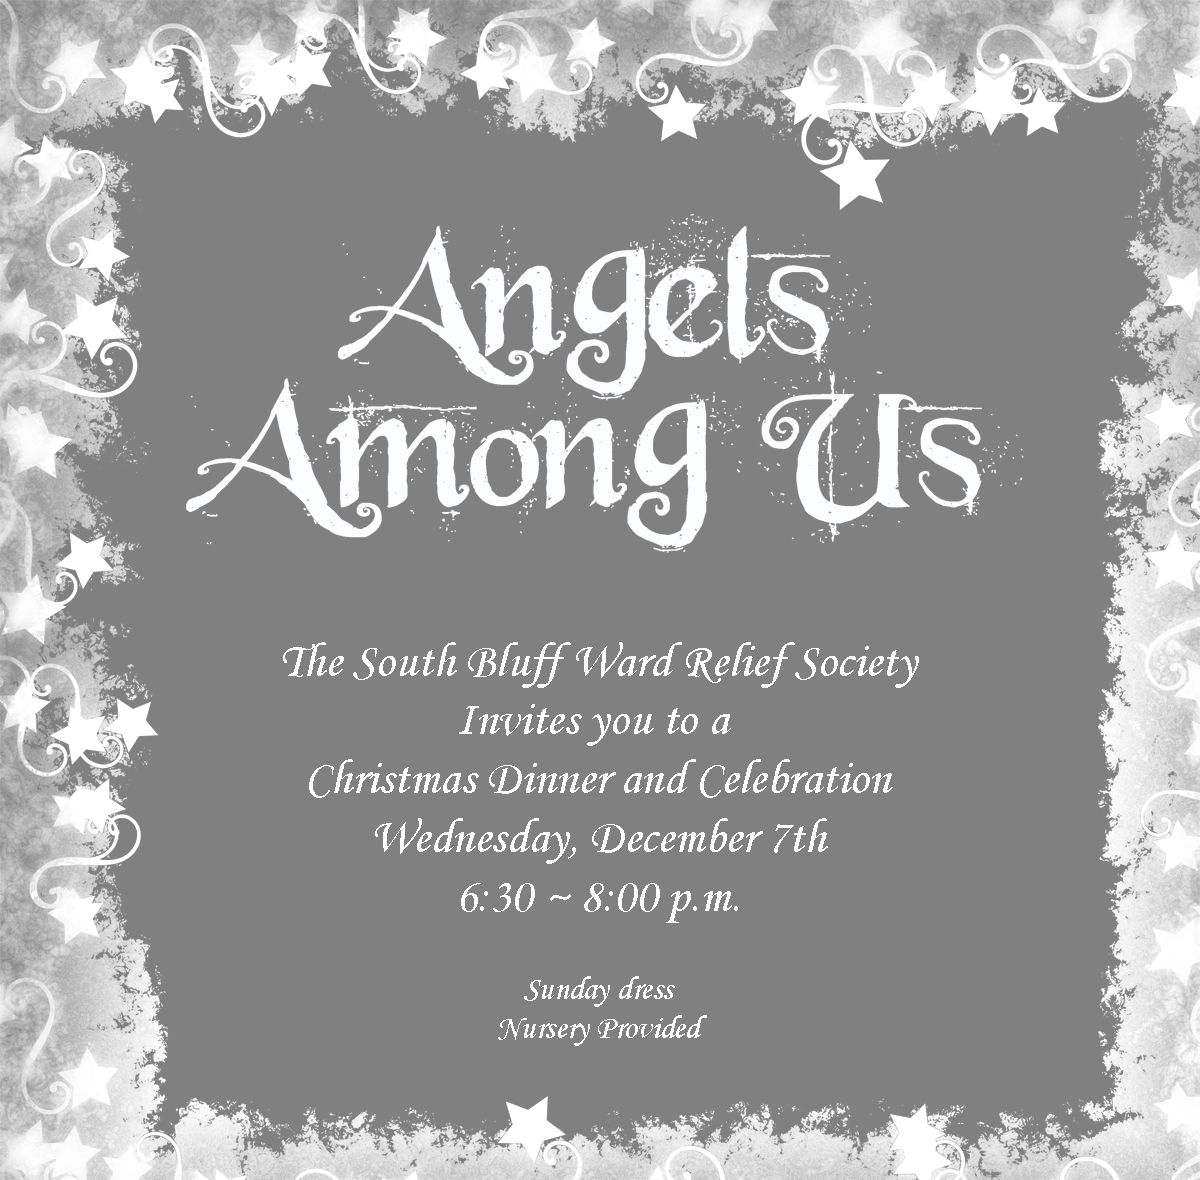 Lds Ward Christmas Party Program Ideas Part - 41: RS Christmas Party- Angels Among Us